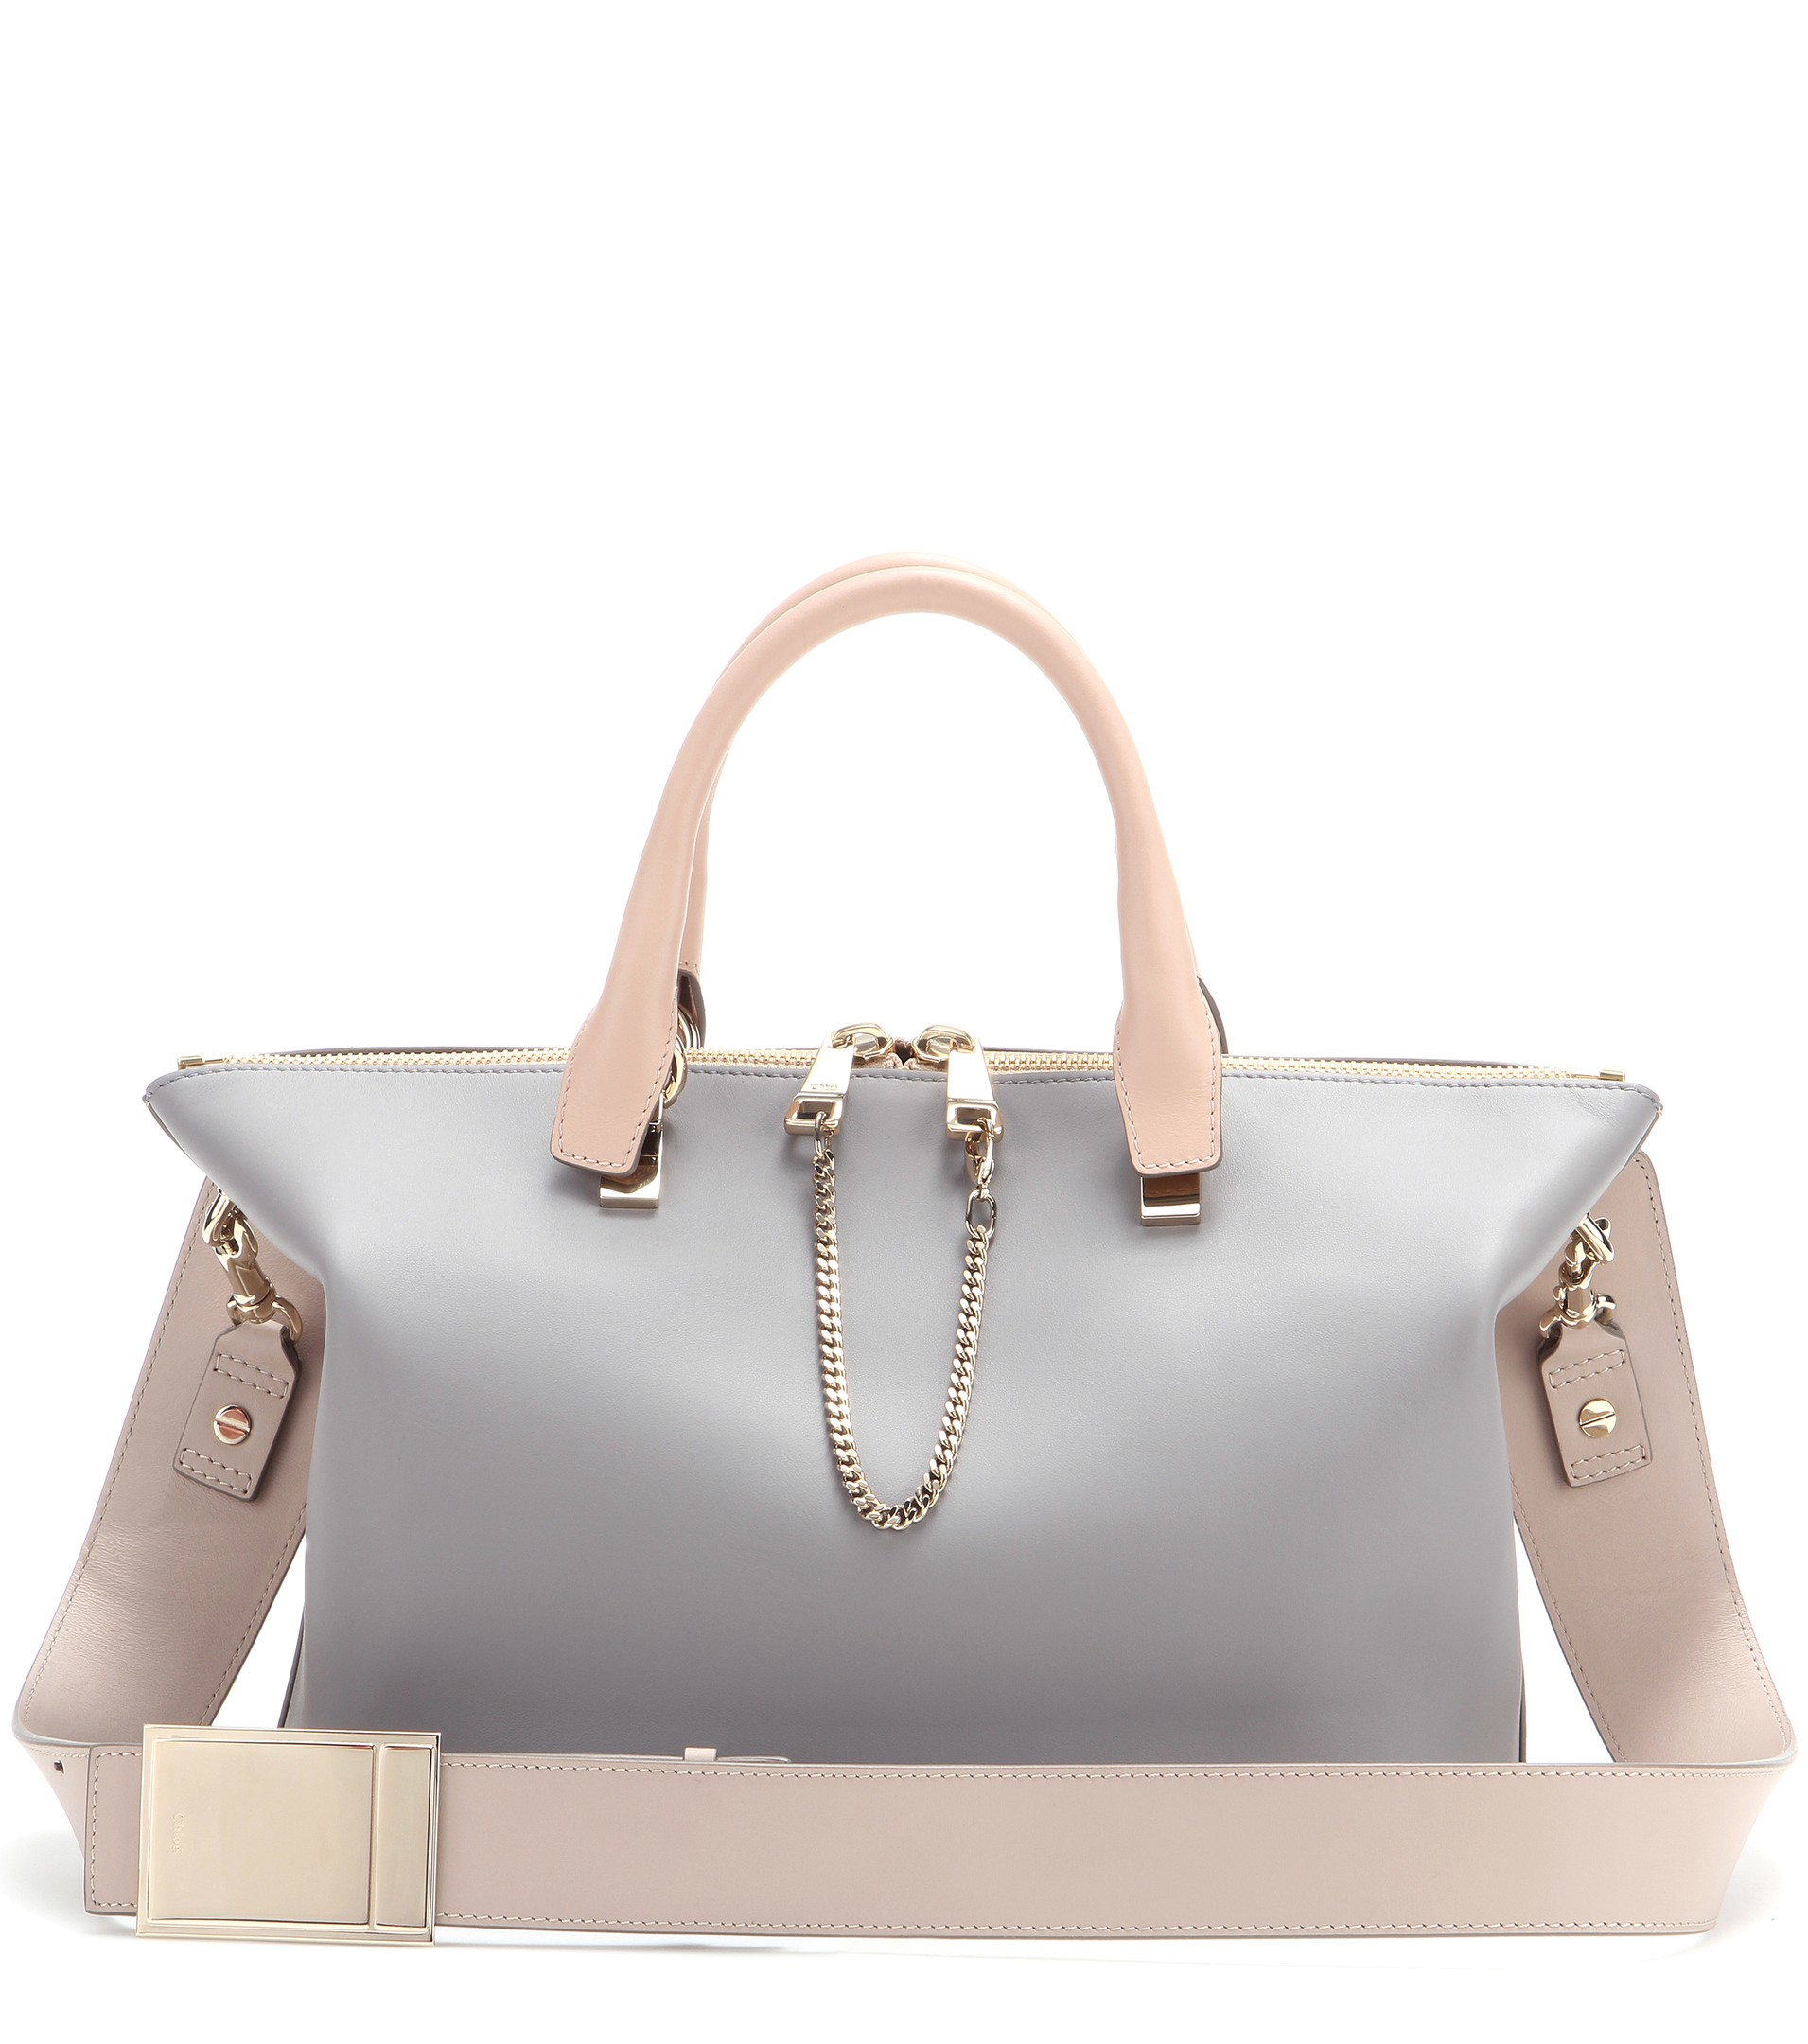 Chlo¨¦ Baylee Medium Leather Tote in Gray (Cashmere Grey/Rope Beige ...